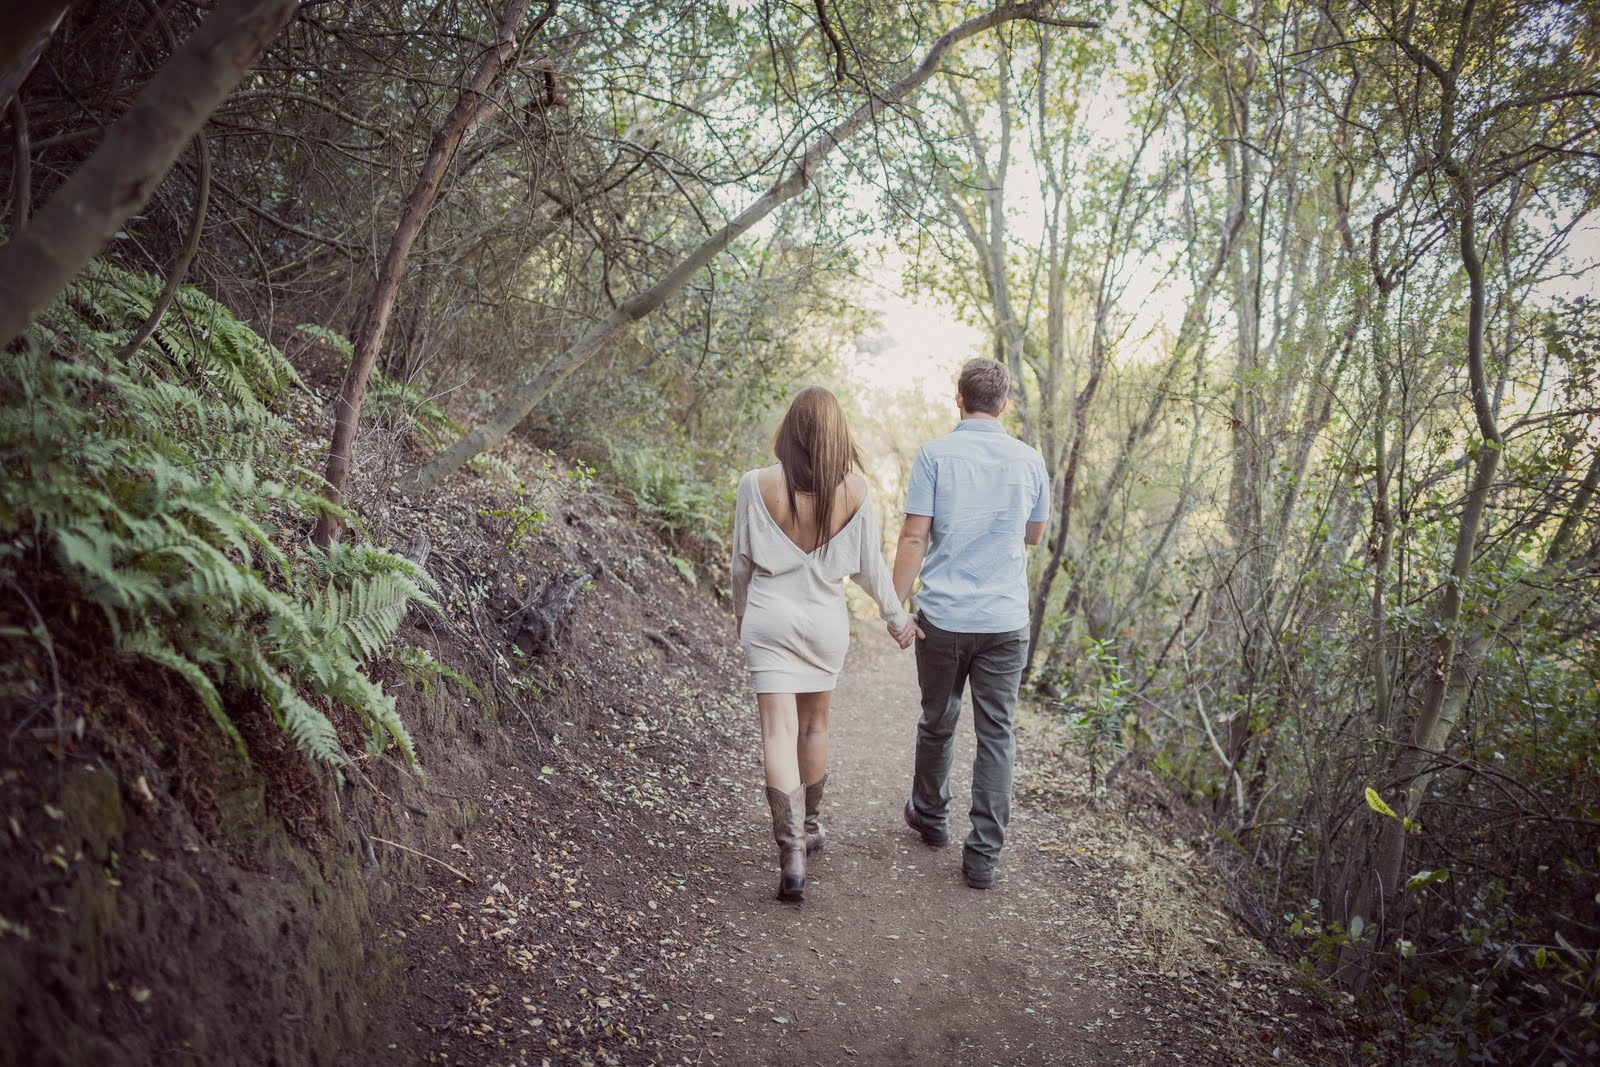 Five Lessons From The First Five Years Of Marriage